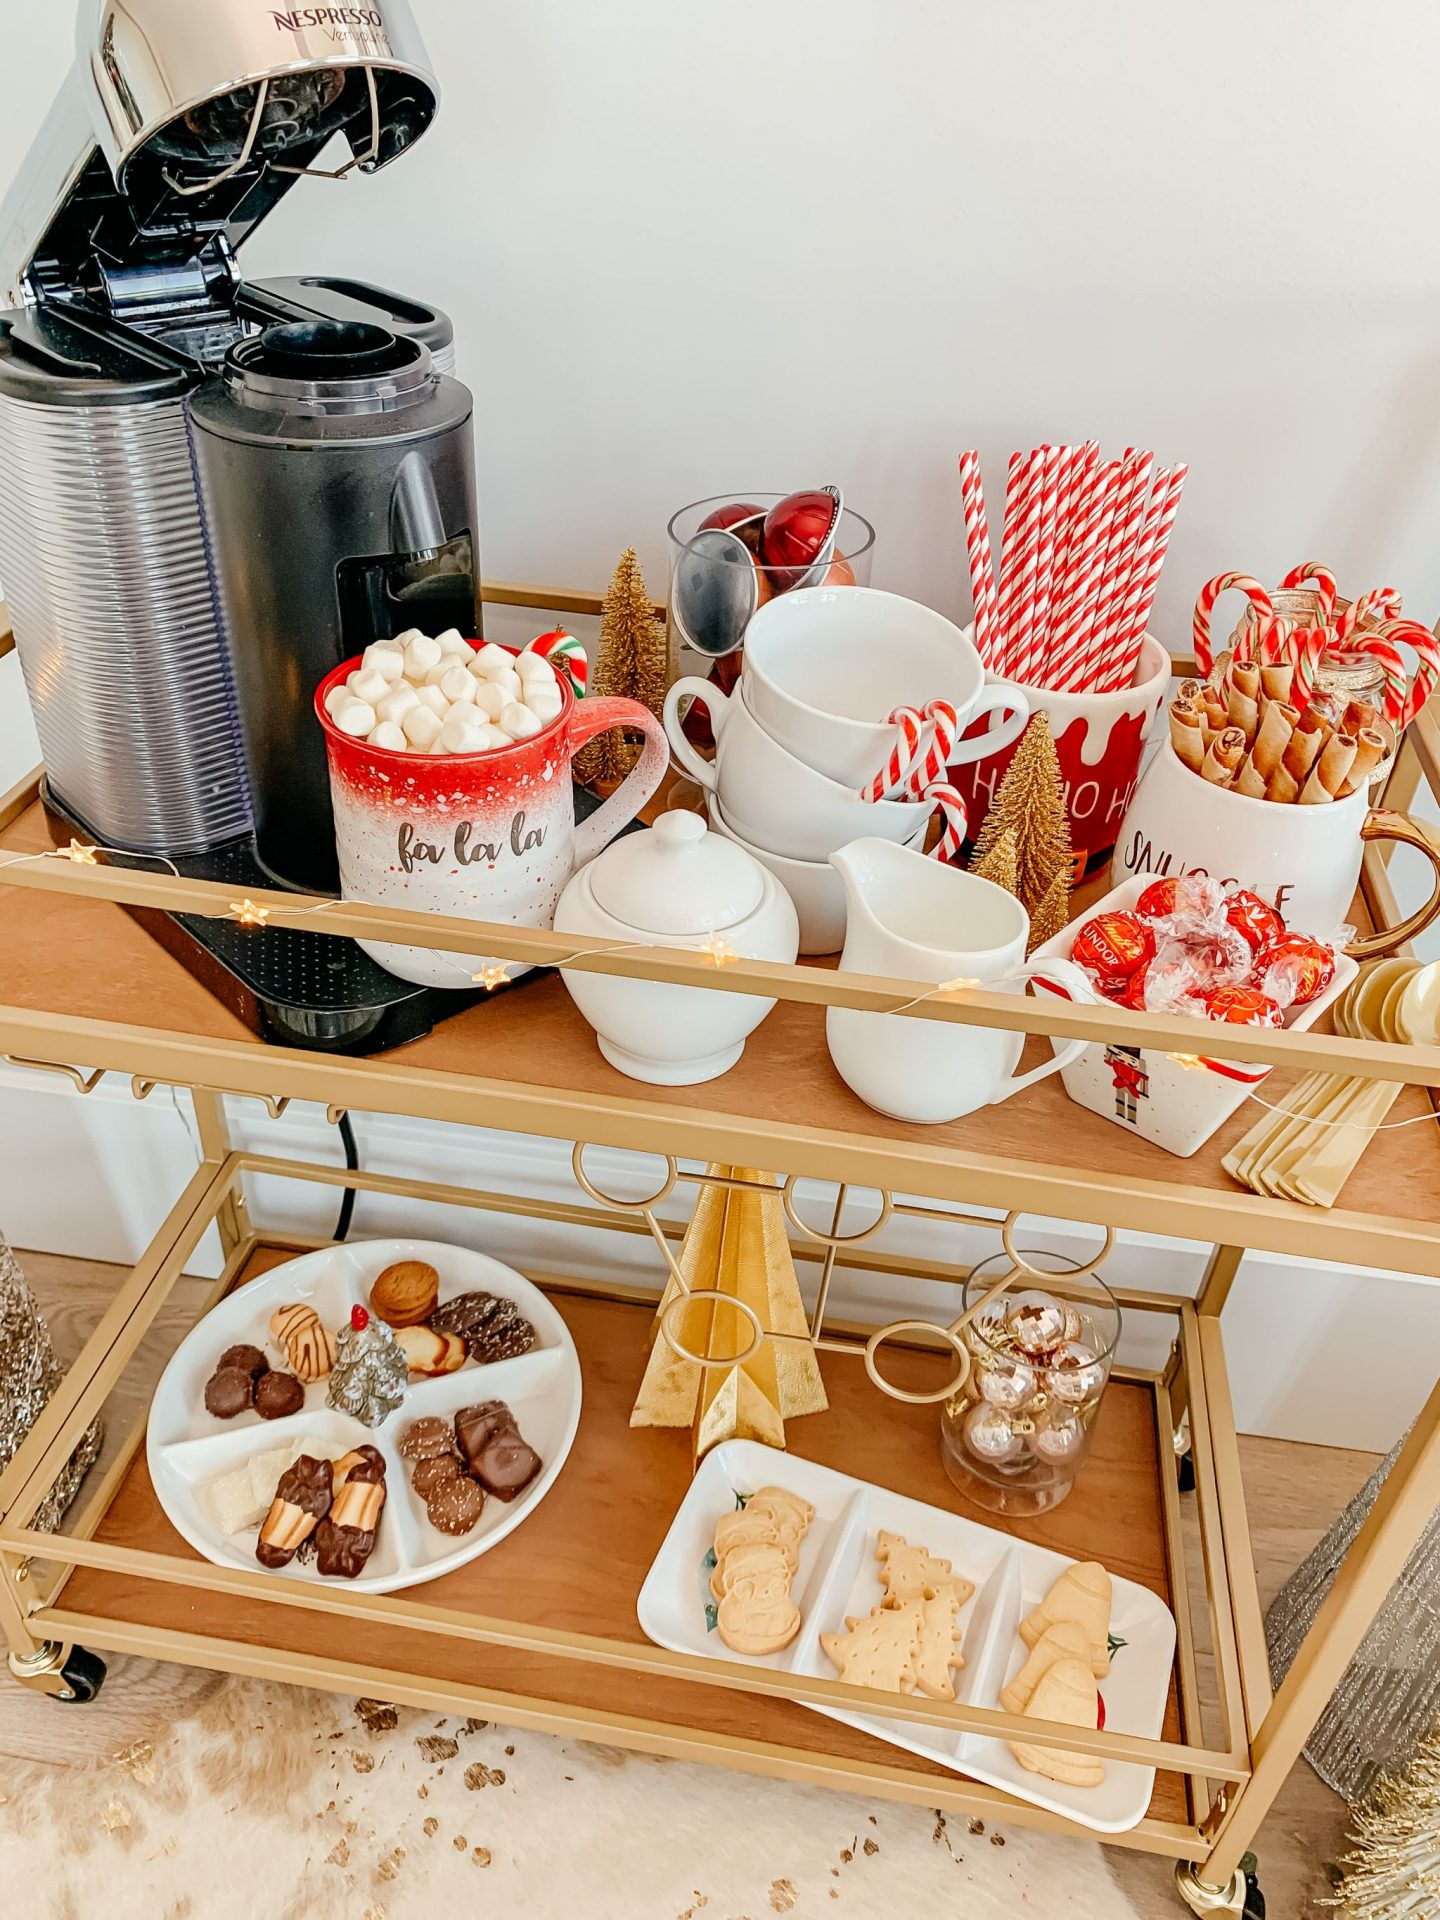 How To Set Up A Coffee Bar For Christmas